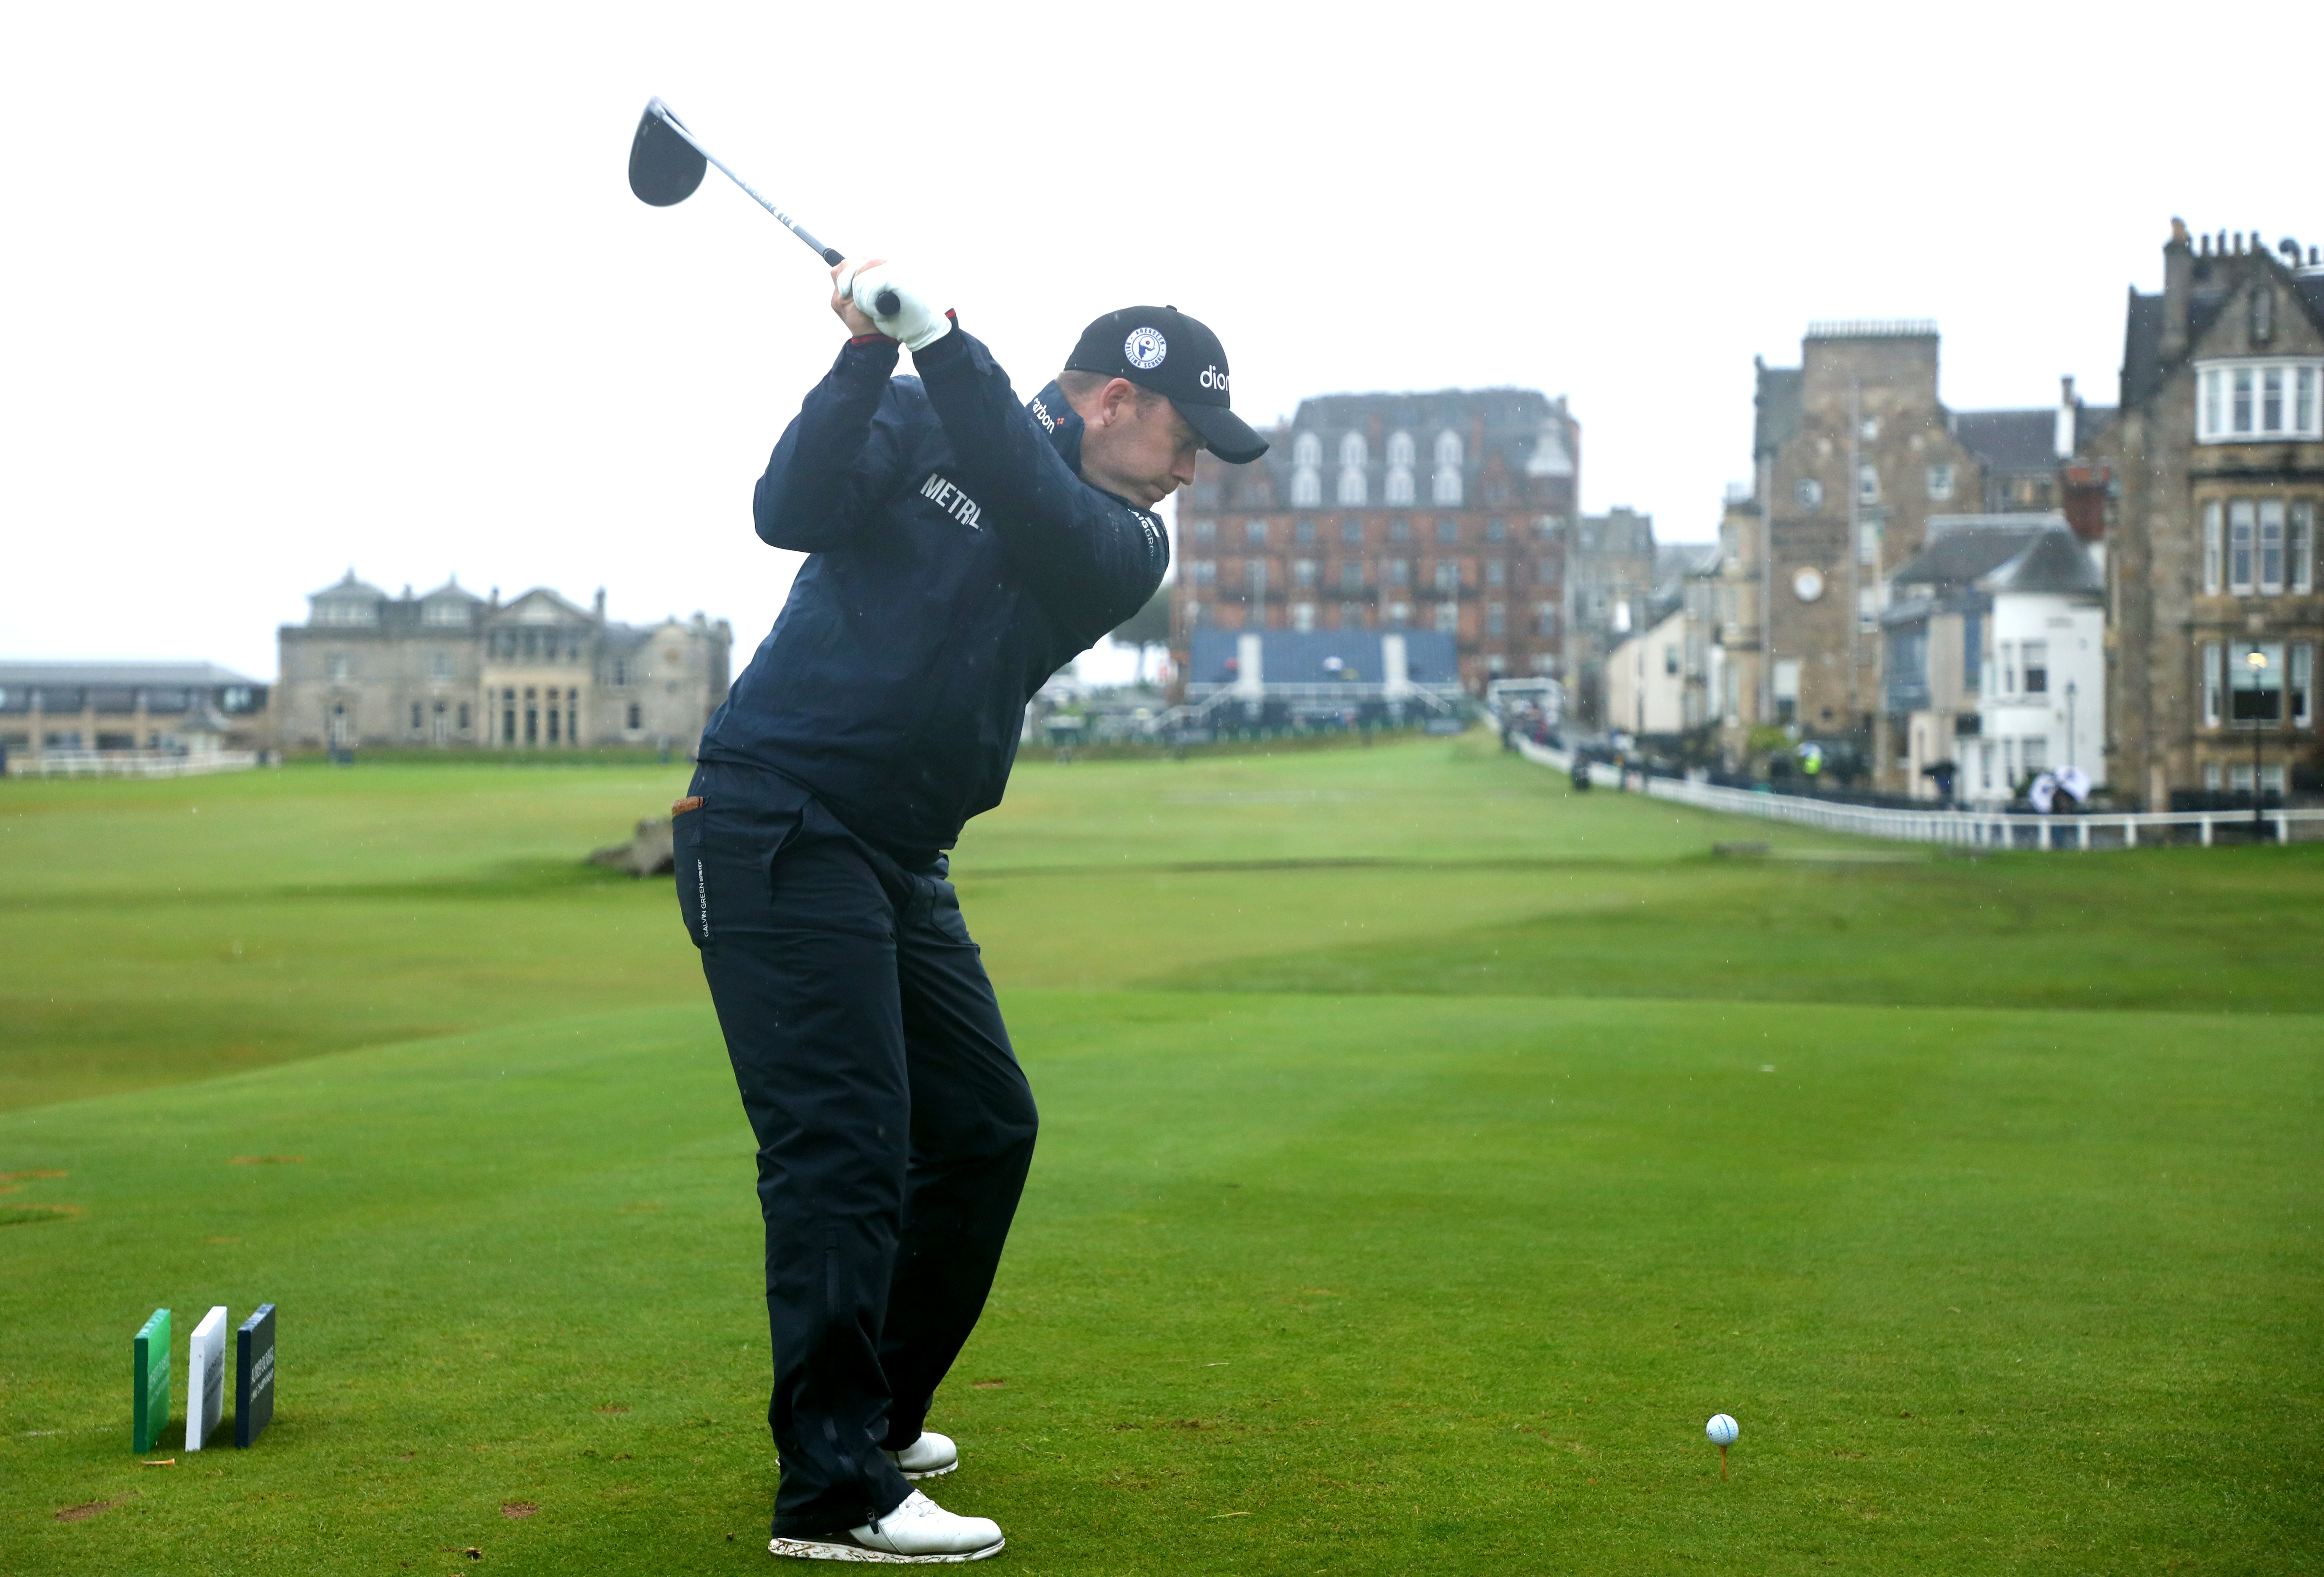 Richie Ramsay of Scotland tees off on the 18th hole during day two of the Alfred Dunhill Links Championship. (Photo by Matthew Lewis/Getty Images)